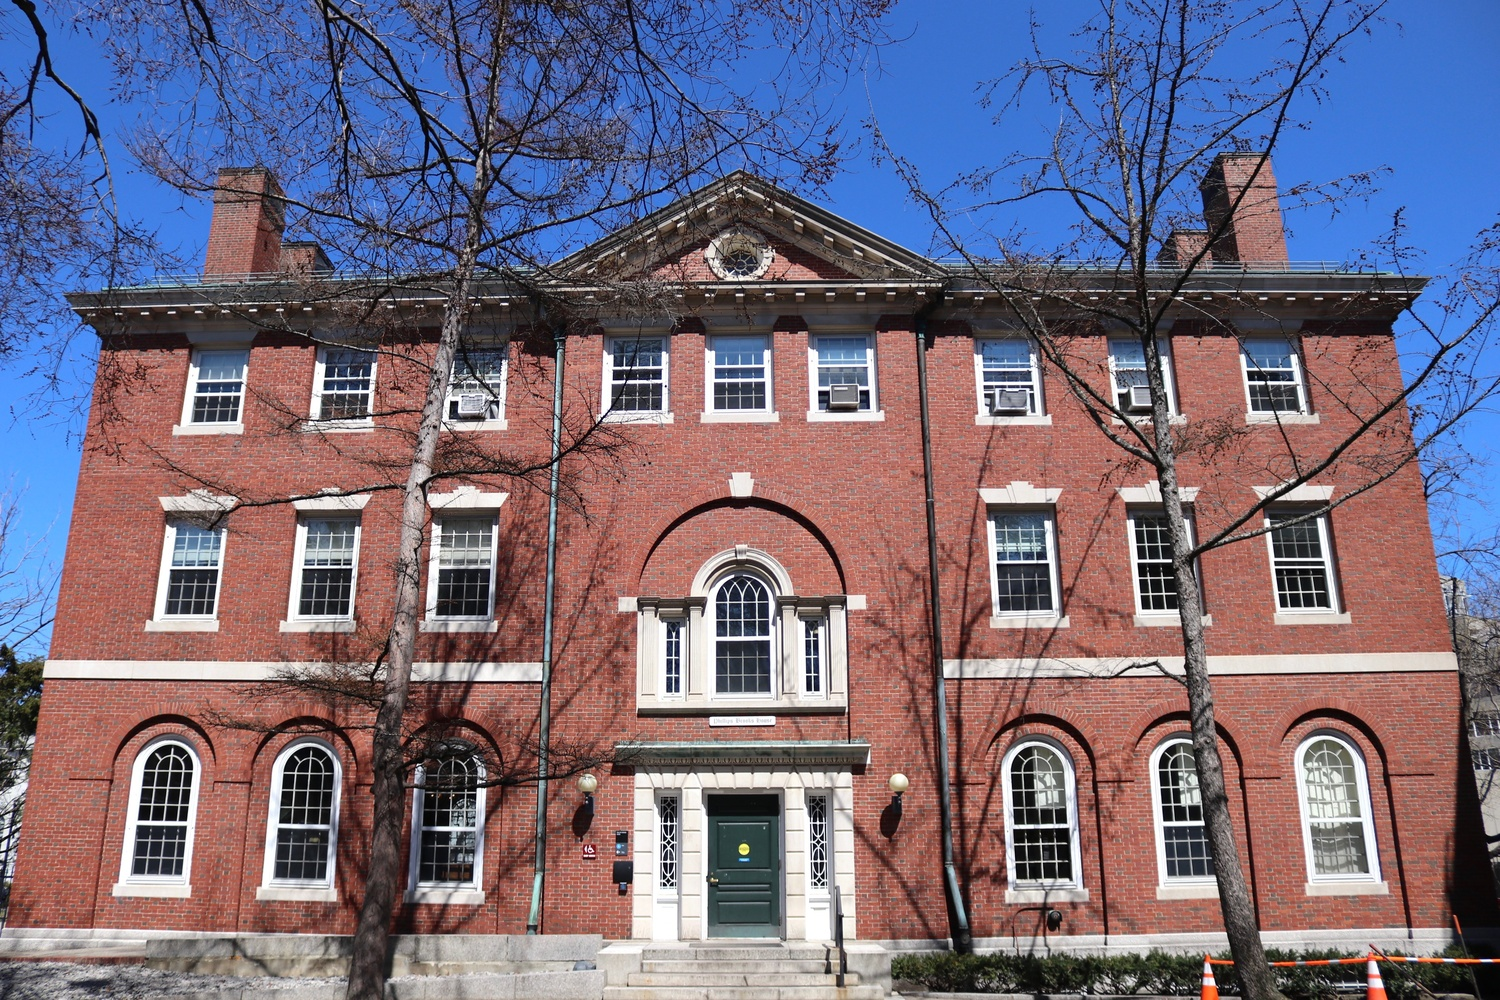 Phillips Brooks House stands in the northwest corner of Harvard Yard and houses several College public service programs.